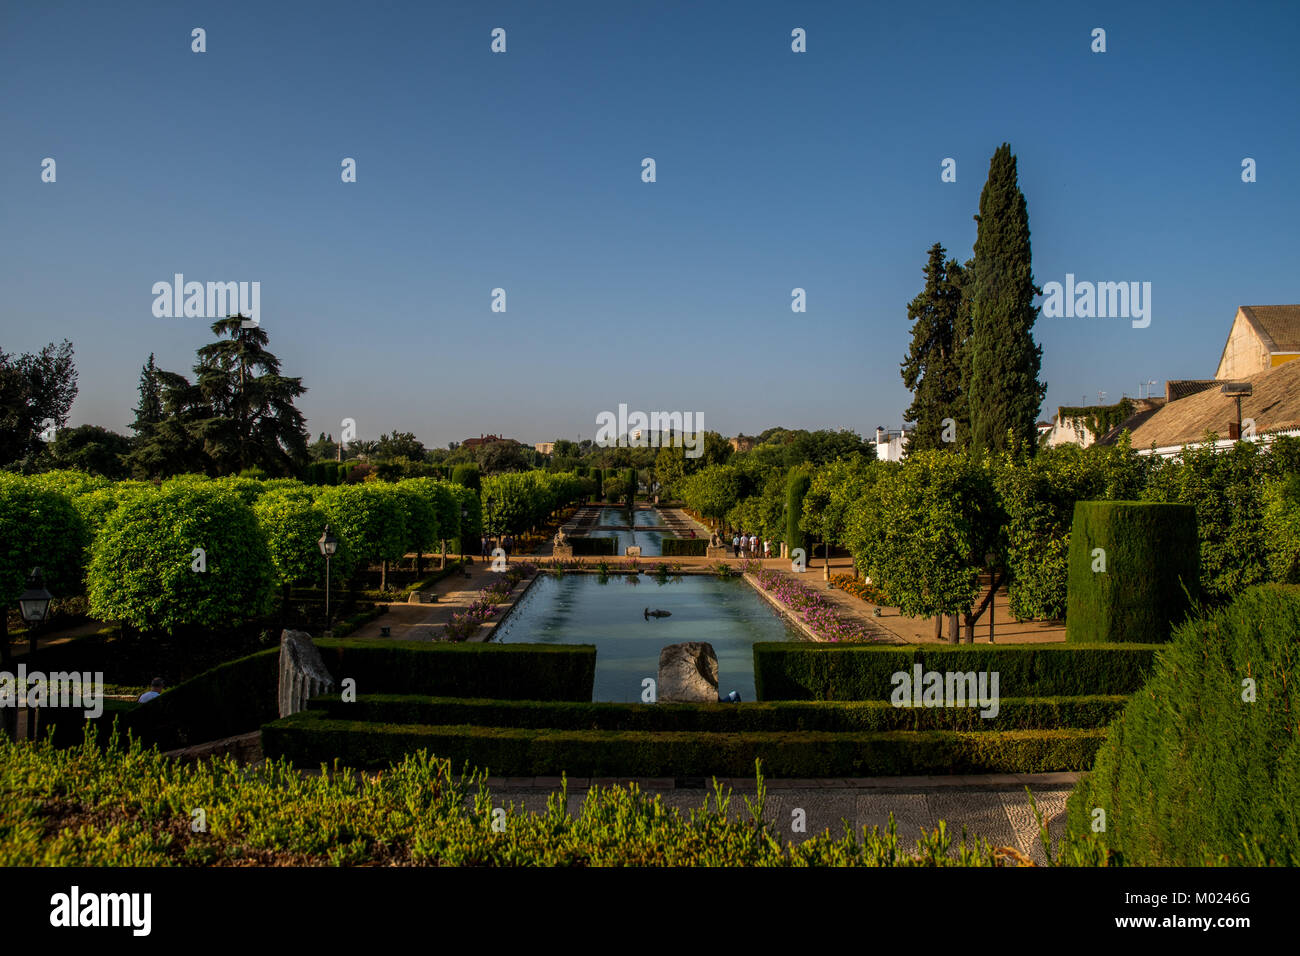 CORDOBA, ANDALUSIA / SPAIN - OCTOBER 14 2017: GREEN PARK WITH WATER AND BLUE SKY Stock Photo